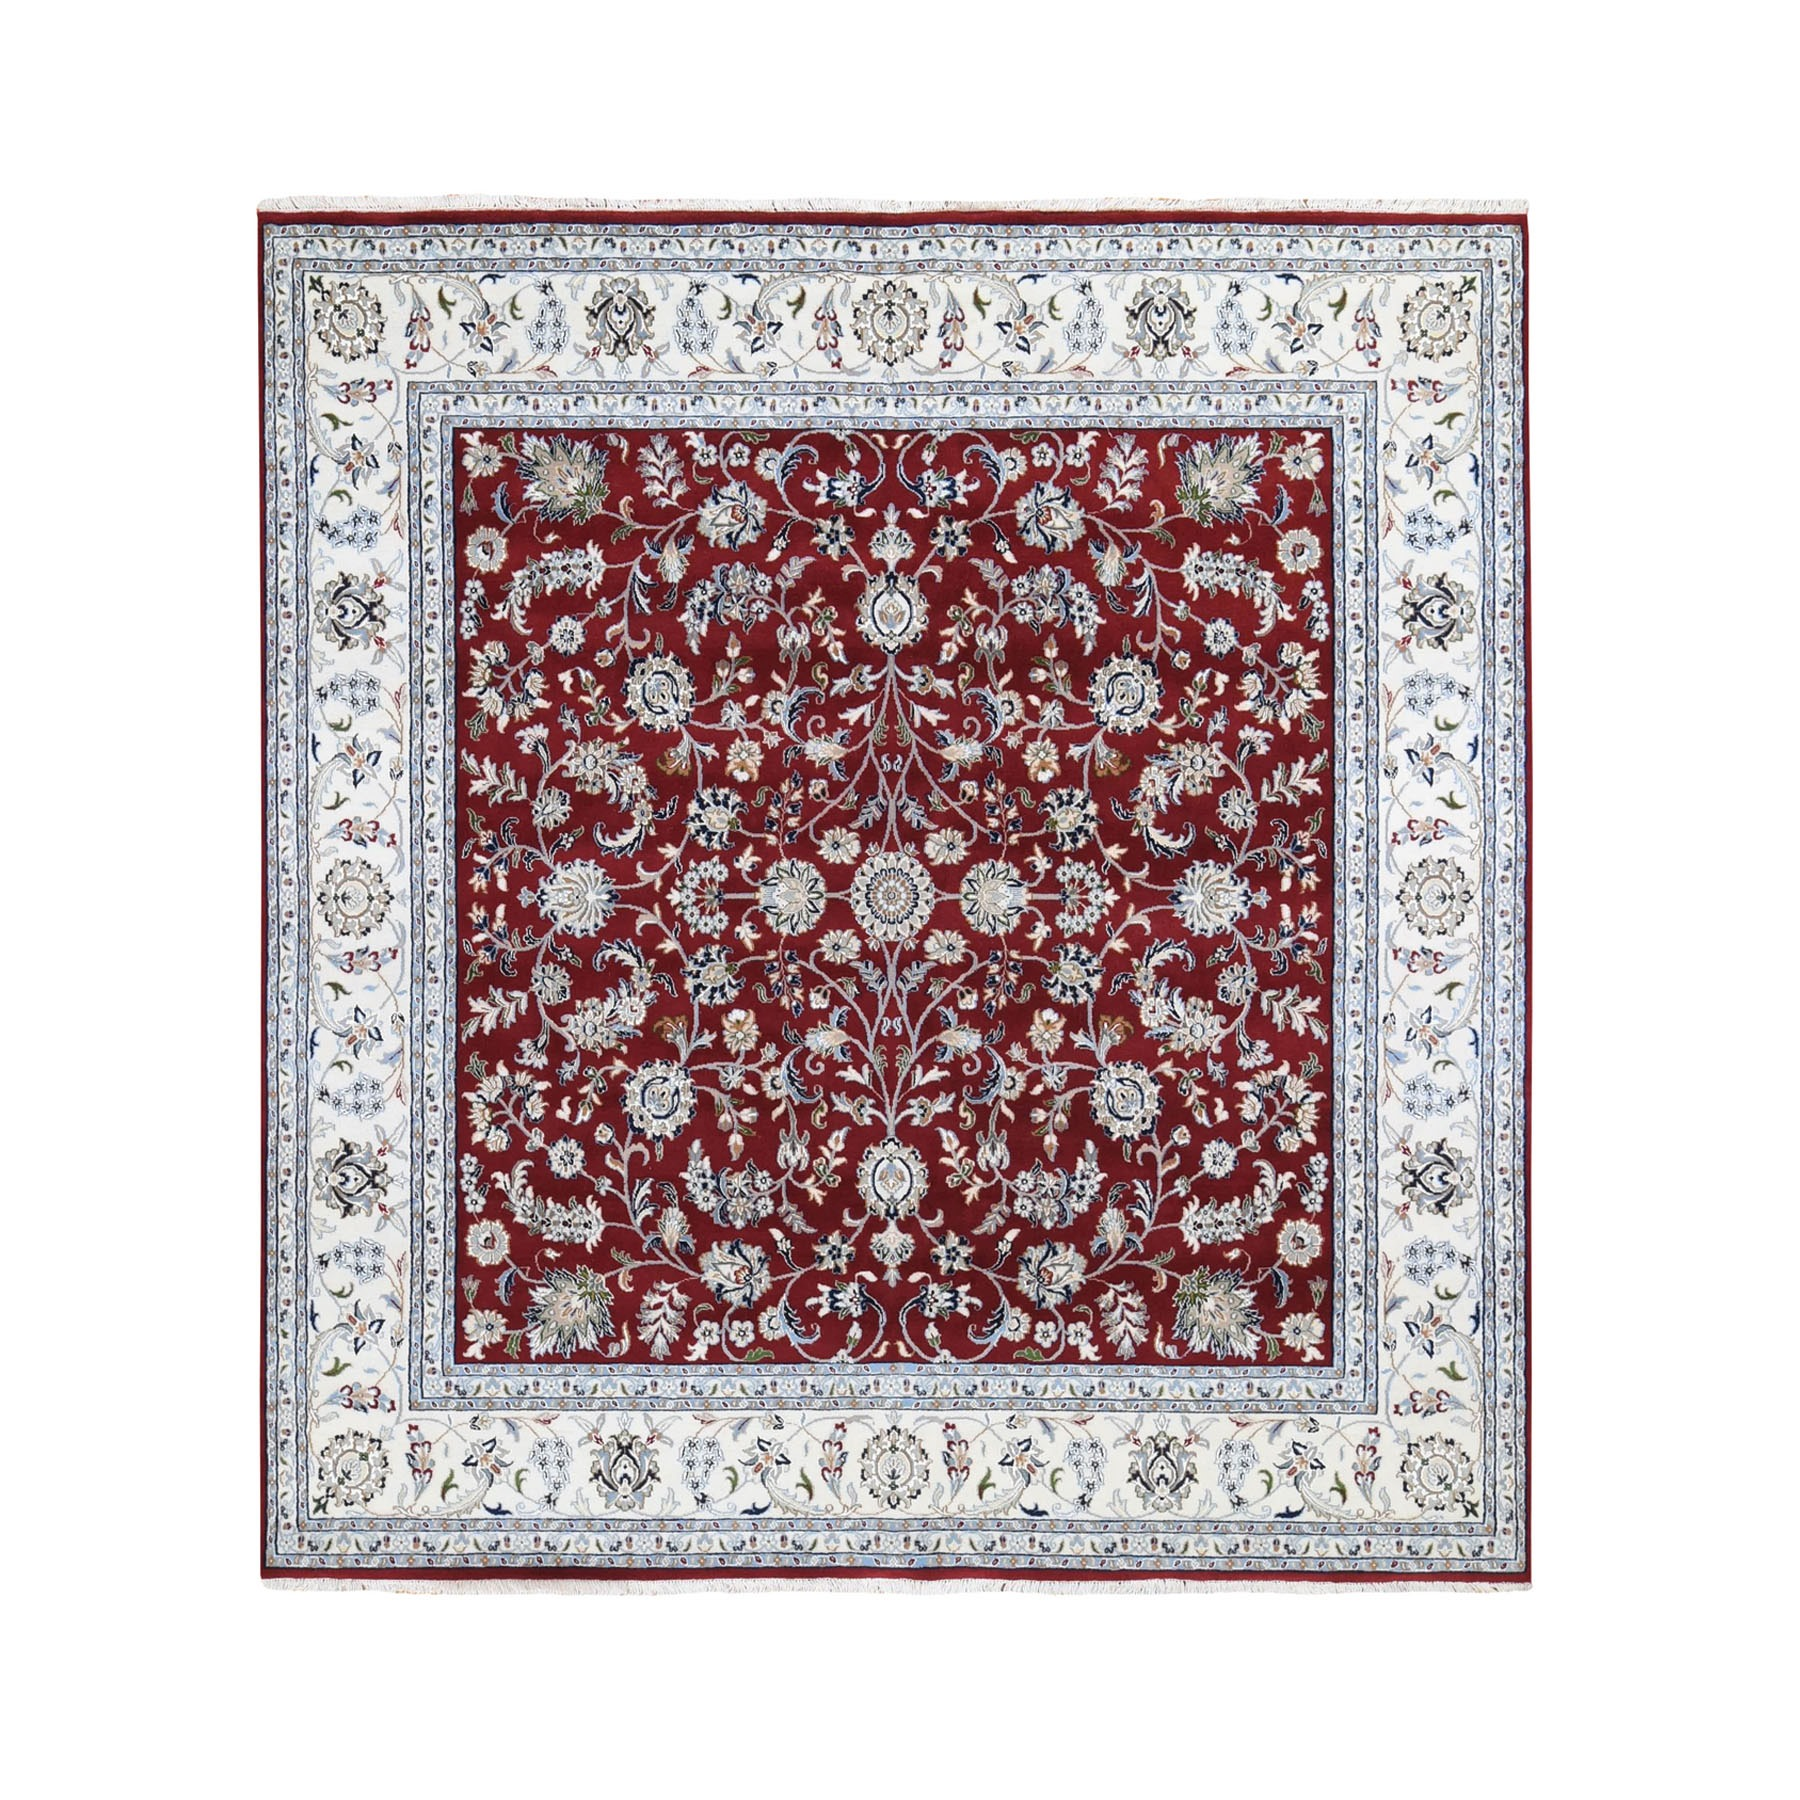 8'X8' Square Red Wool And Silk All Over Design Nain 250 Kpsi Hand Knotted Oriental Rug moad78b8